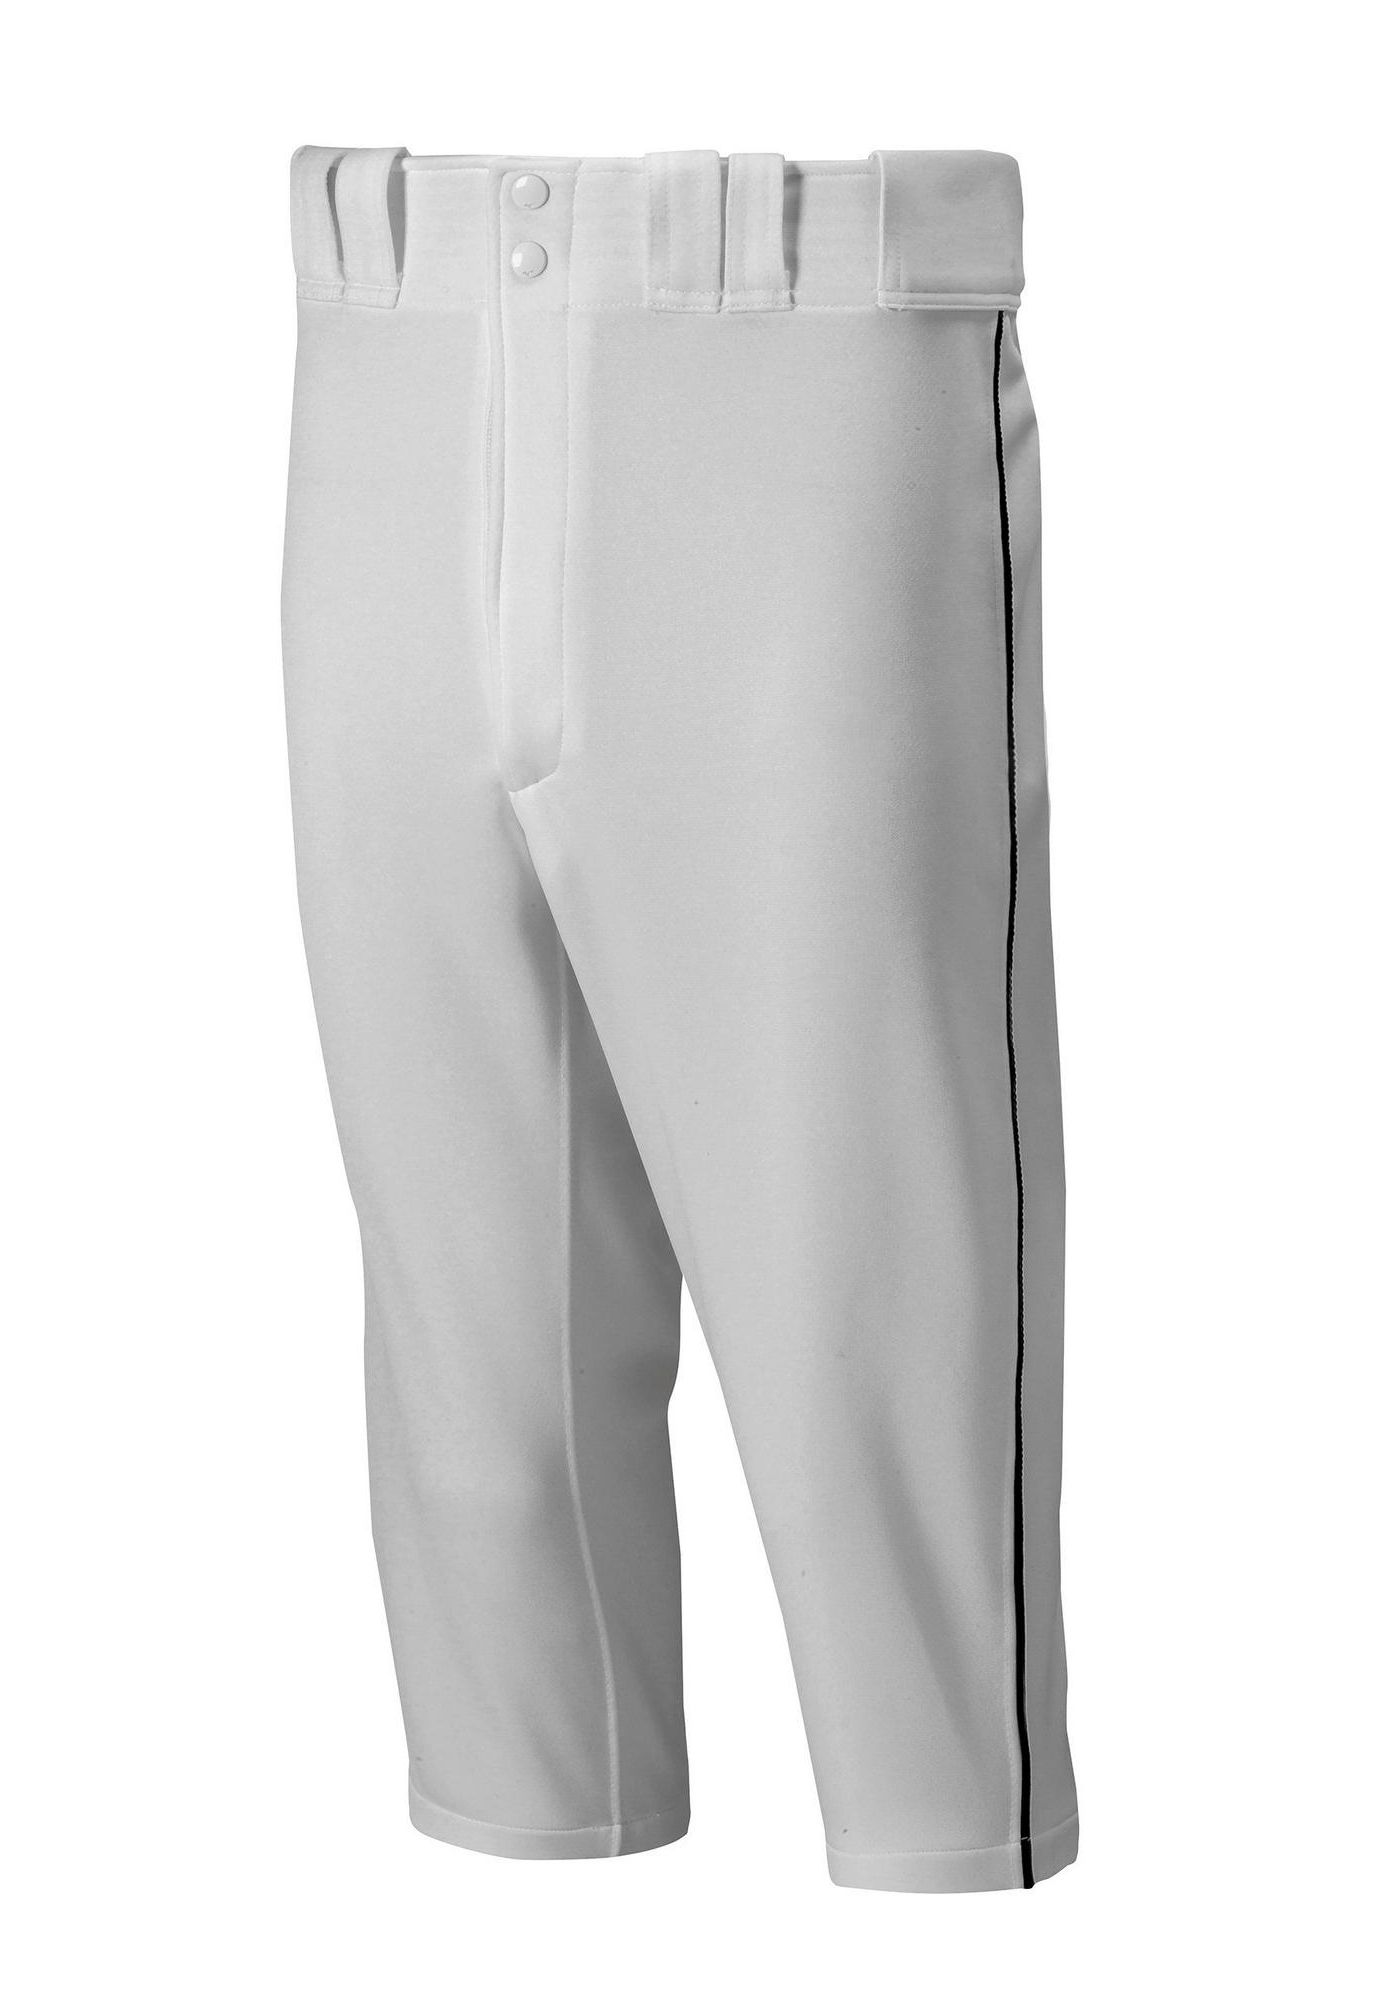 Mizuno Men's Premier Short Piped Baseball Pants